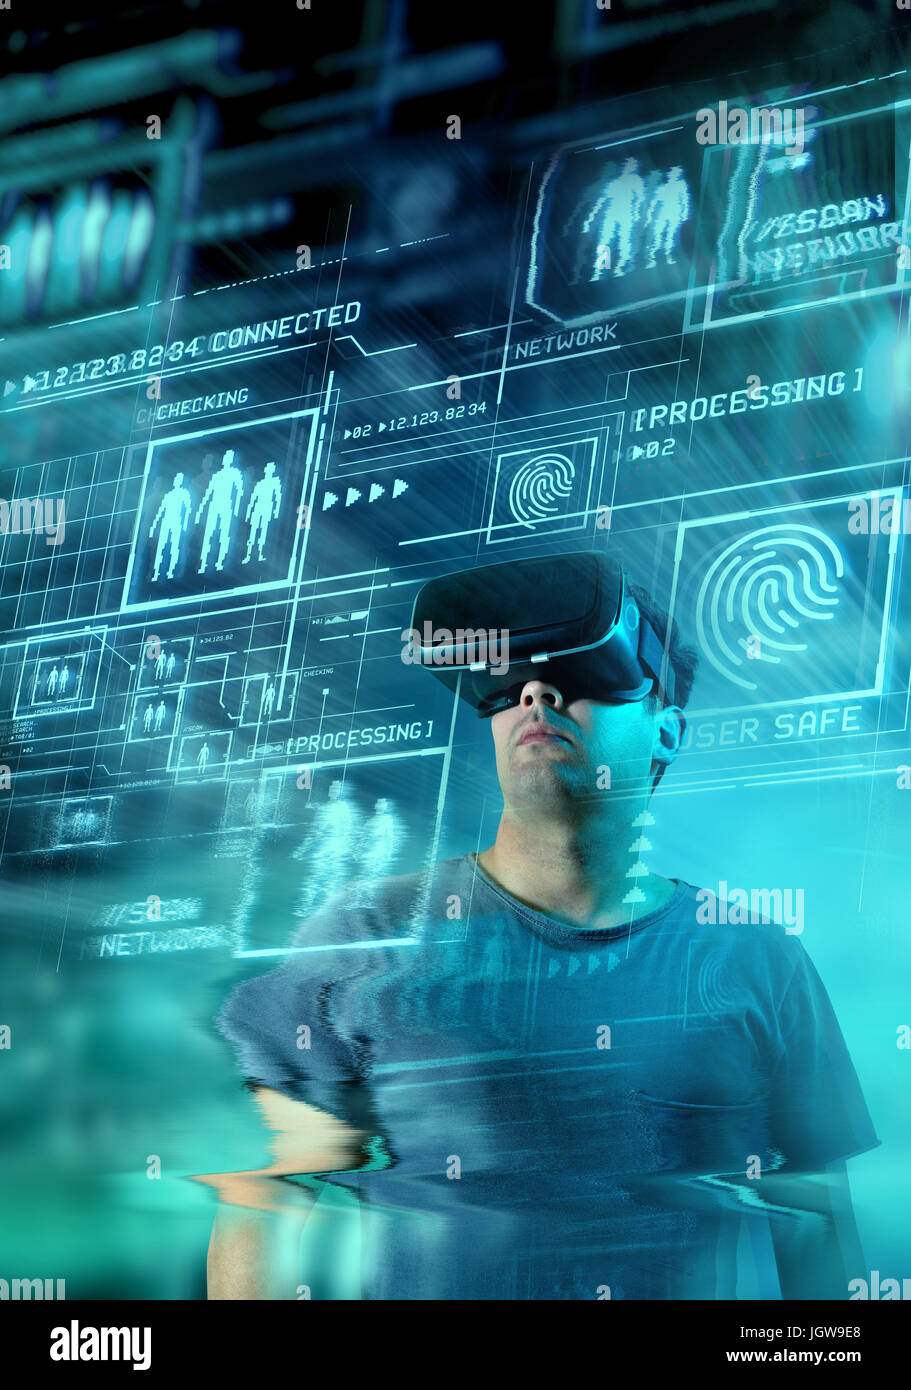 A young man wearing virtual reality (VR) goggles and headset with a projection of a digital information on display. - Stock Image